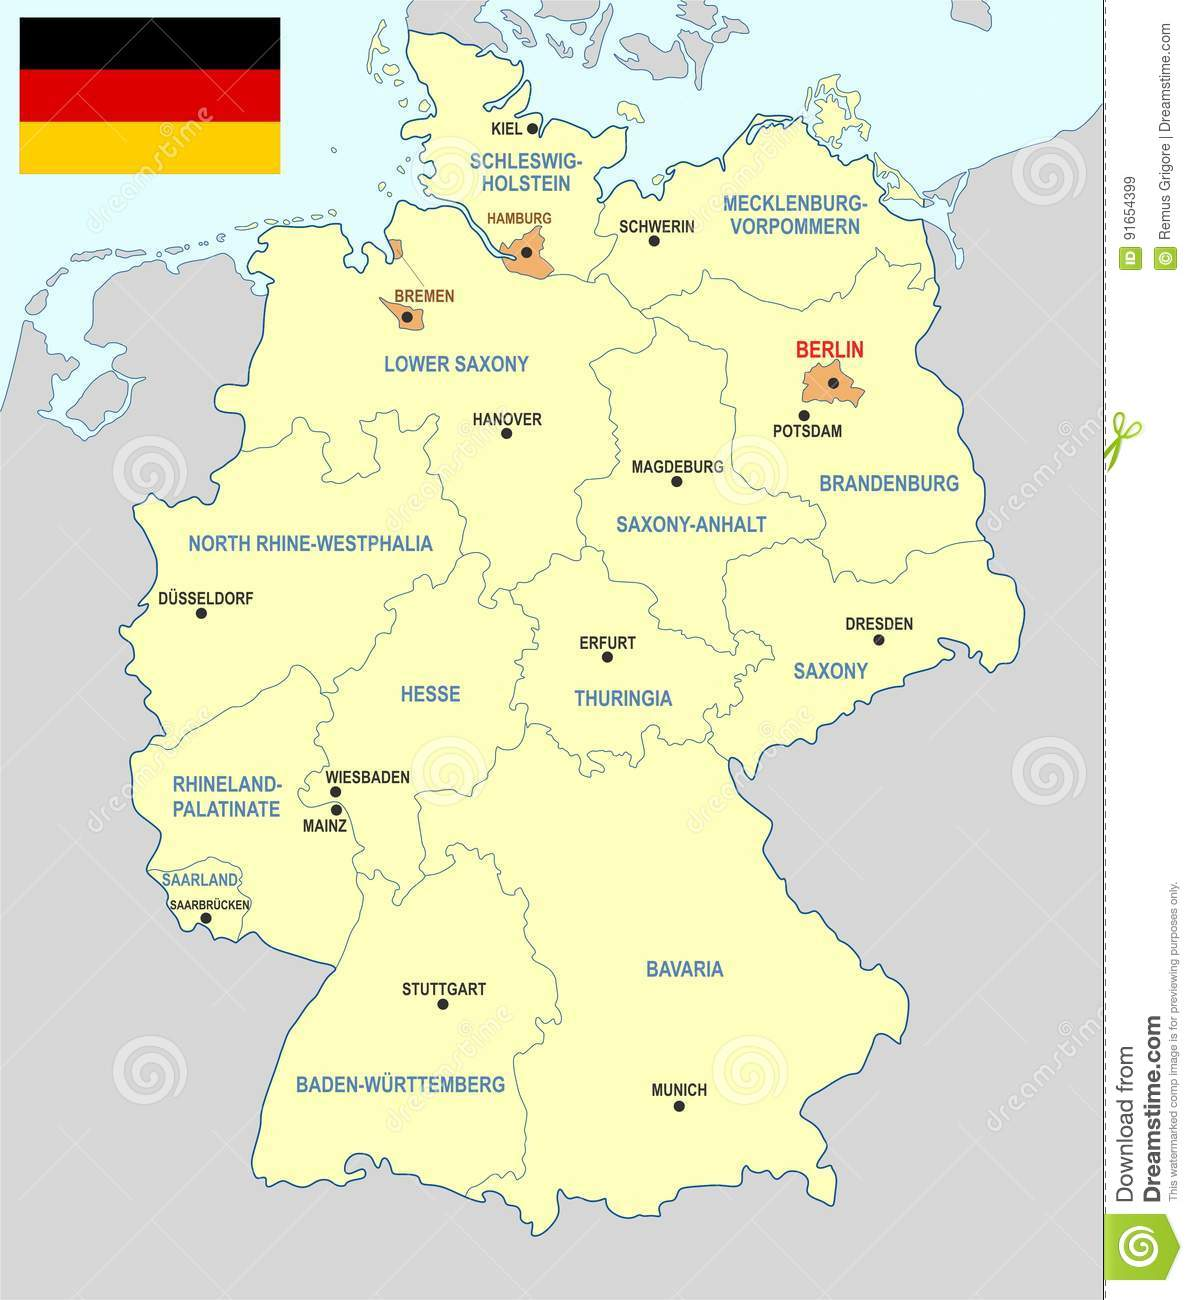 Map Of Germany With States And Cities.Germany Map Cdr Format Stock Vector Illustration Of